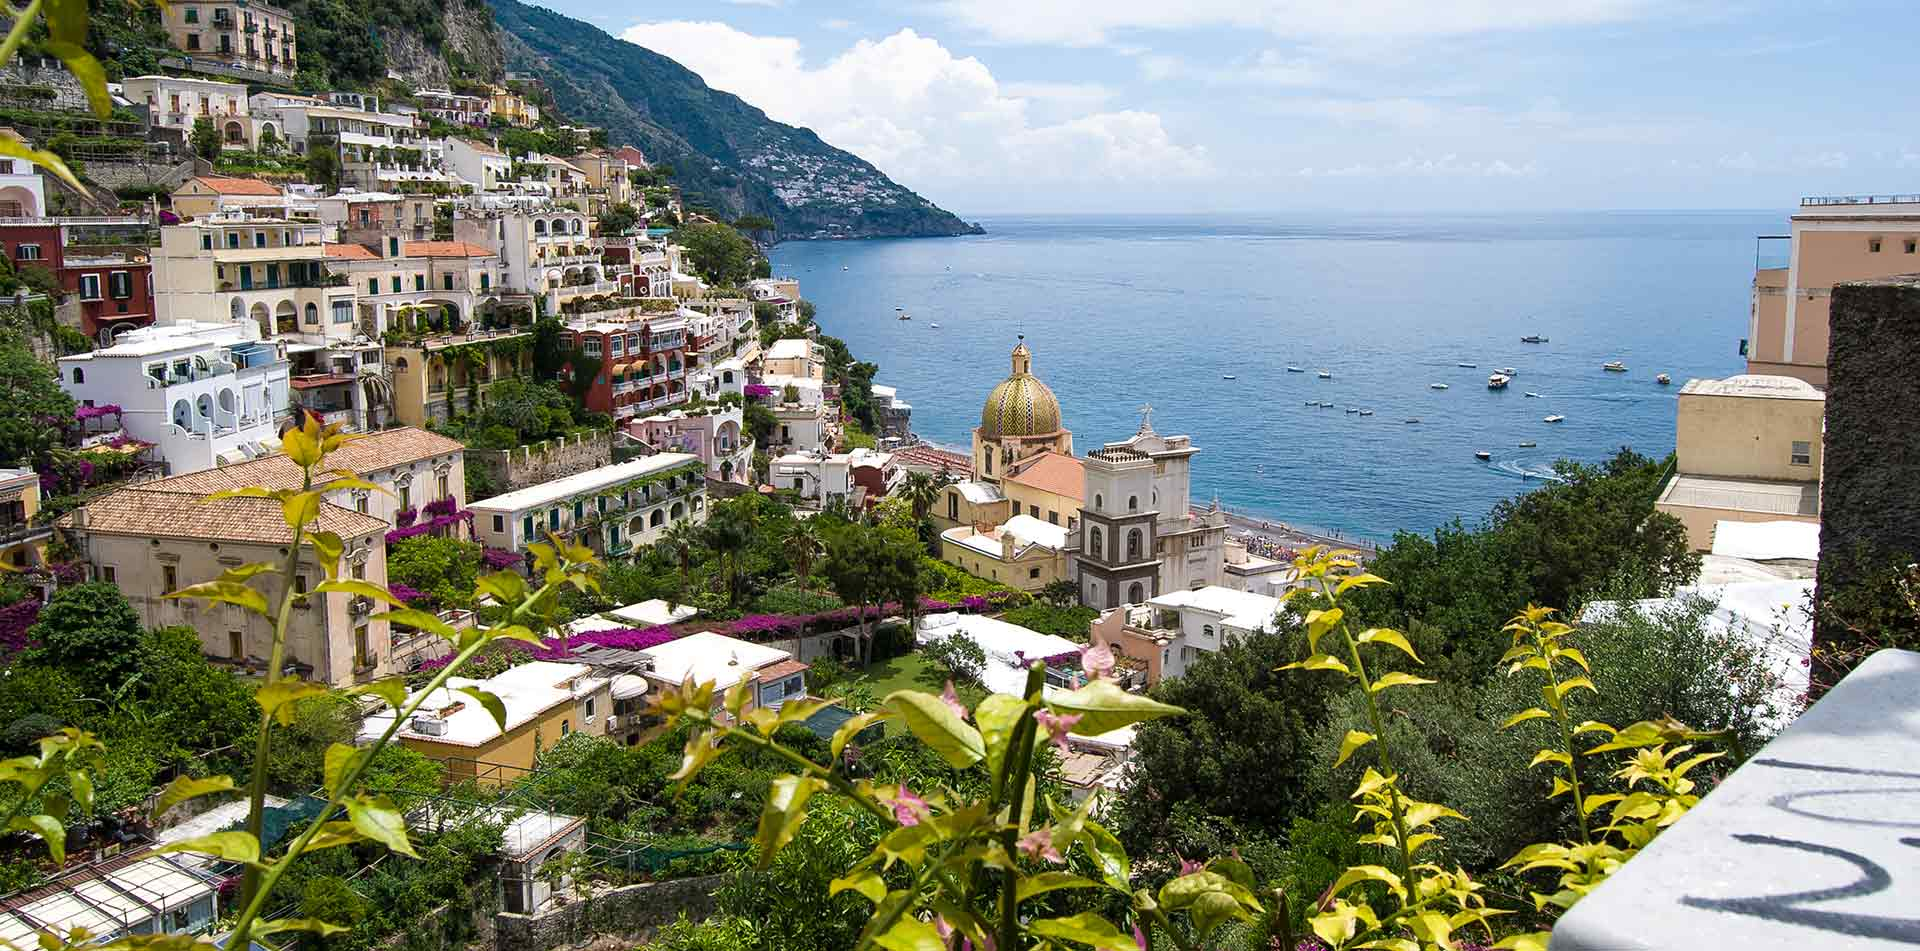 Europe Italy view of Amalfi Coast from Positano beautiful cliffside overlooking sea - luxury vacation destinations